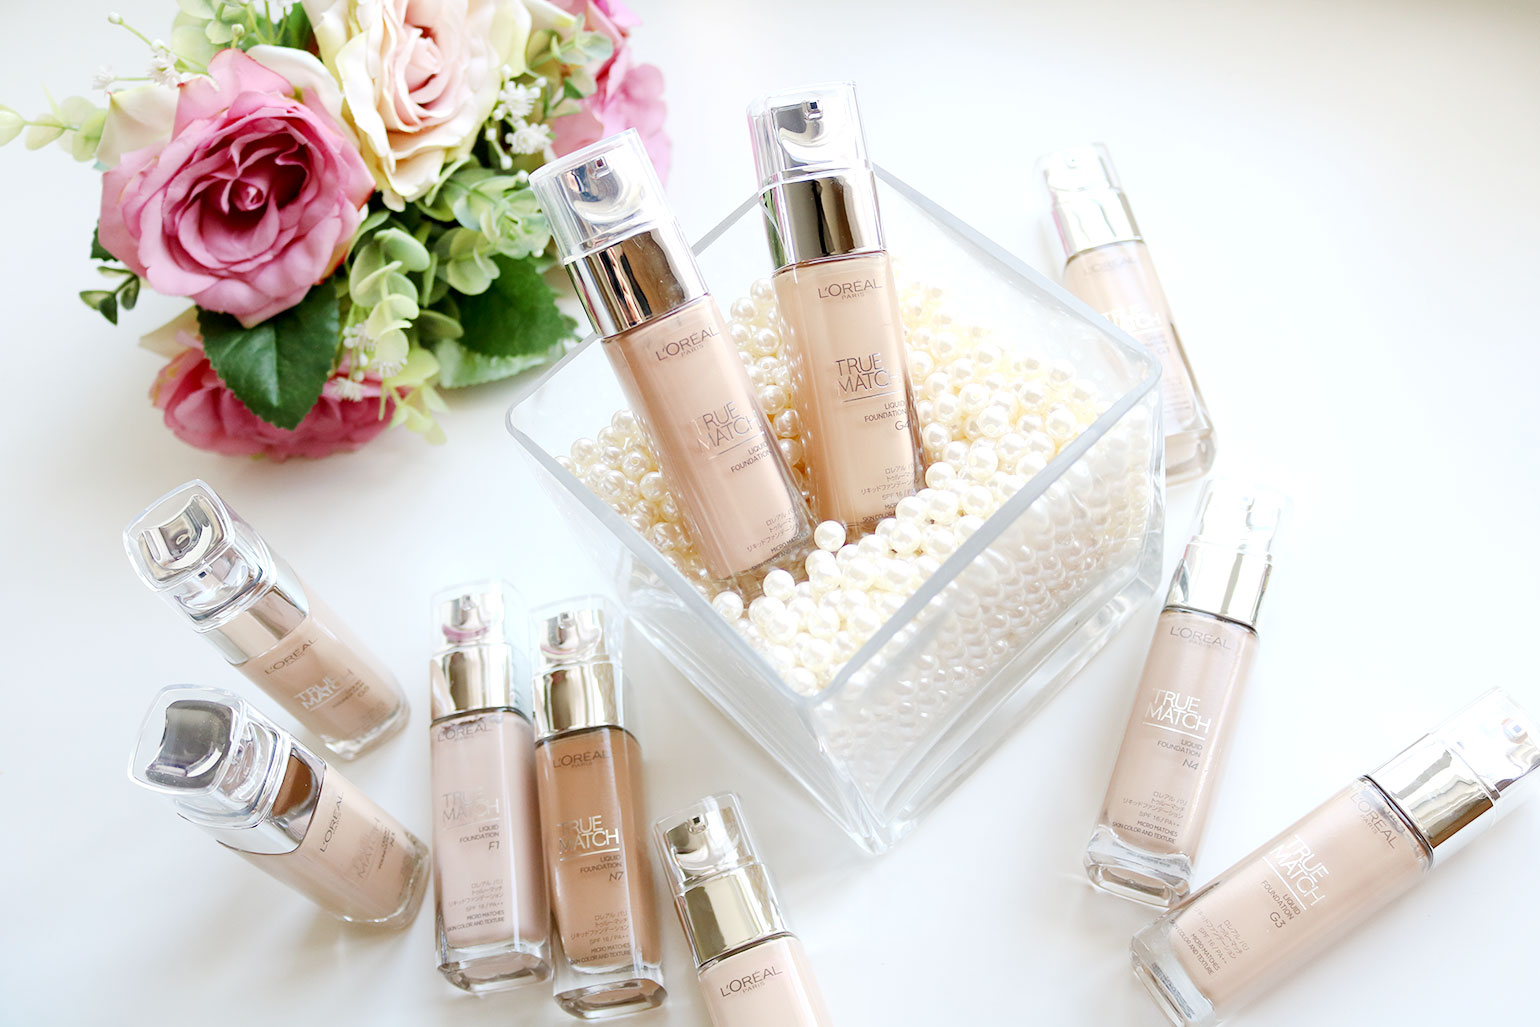 1 Loreal True Match Natural Finish Foundation Review and Swatches - She Sings Beauty by Gen-zel